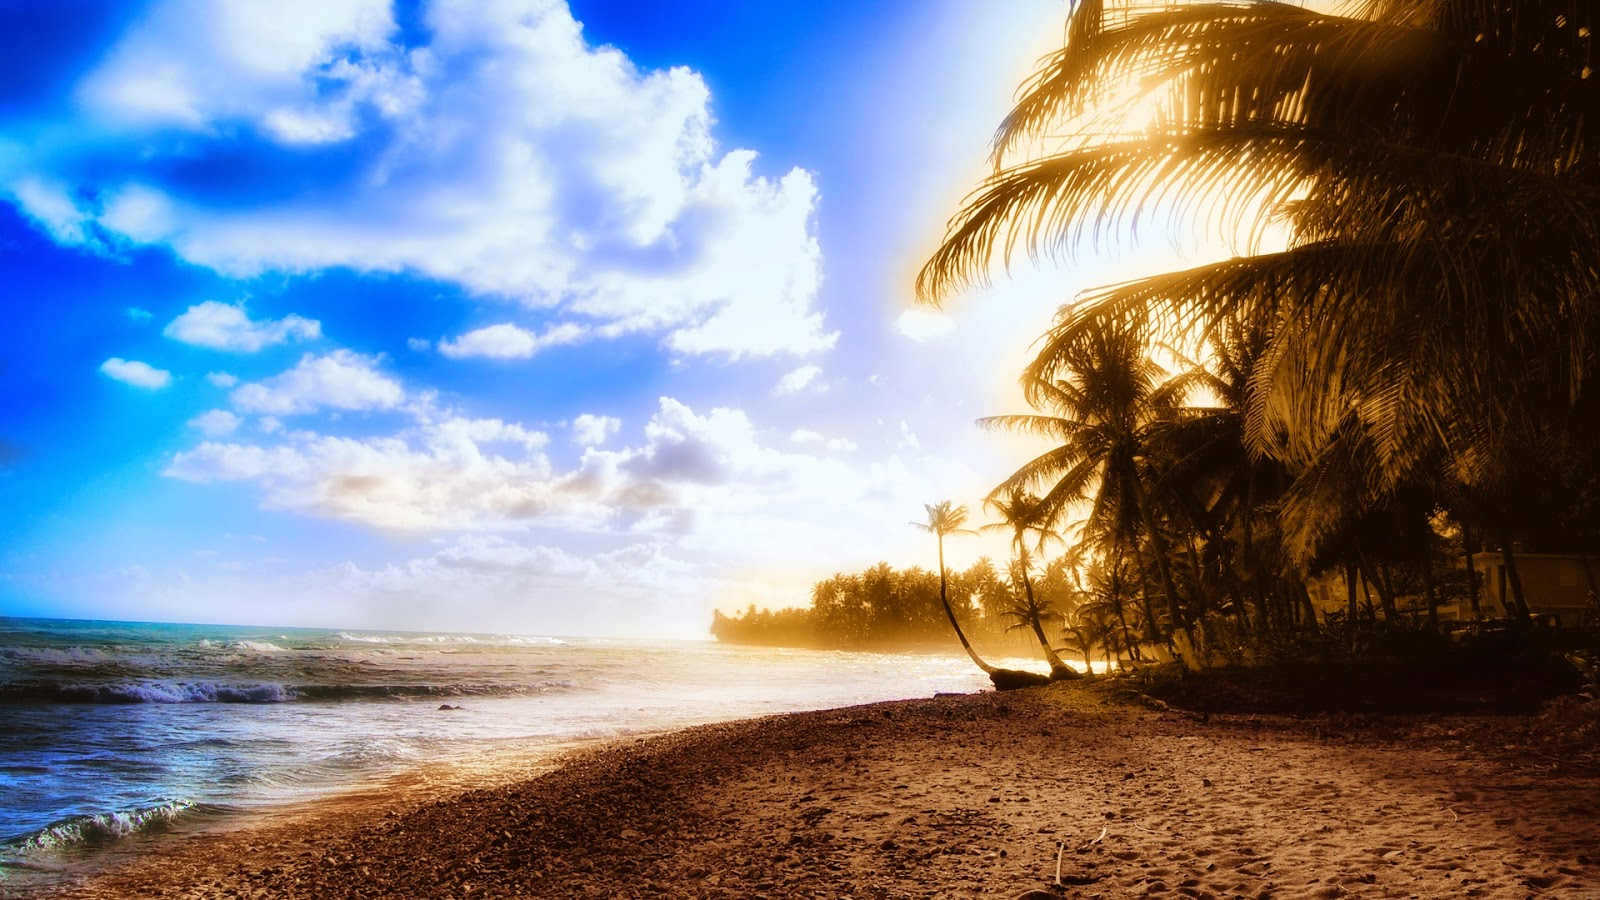 Beach-side-photography-with-gradient-graphic-effects-image.jpg